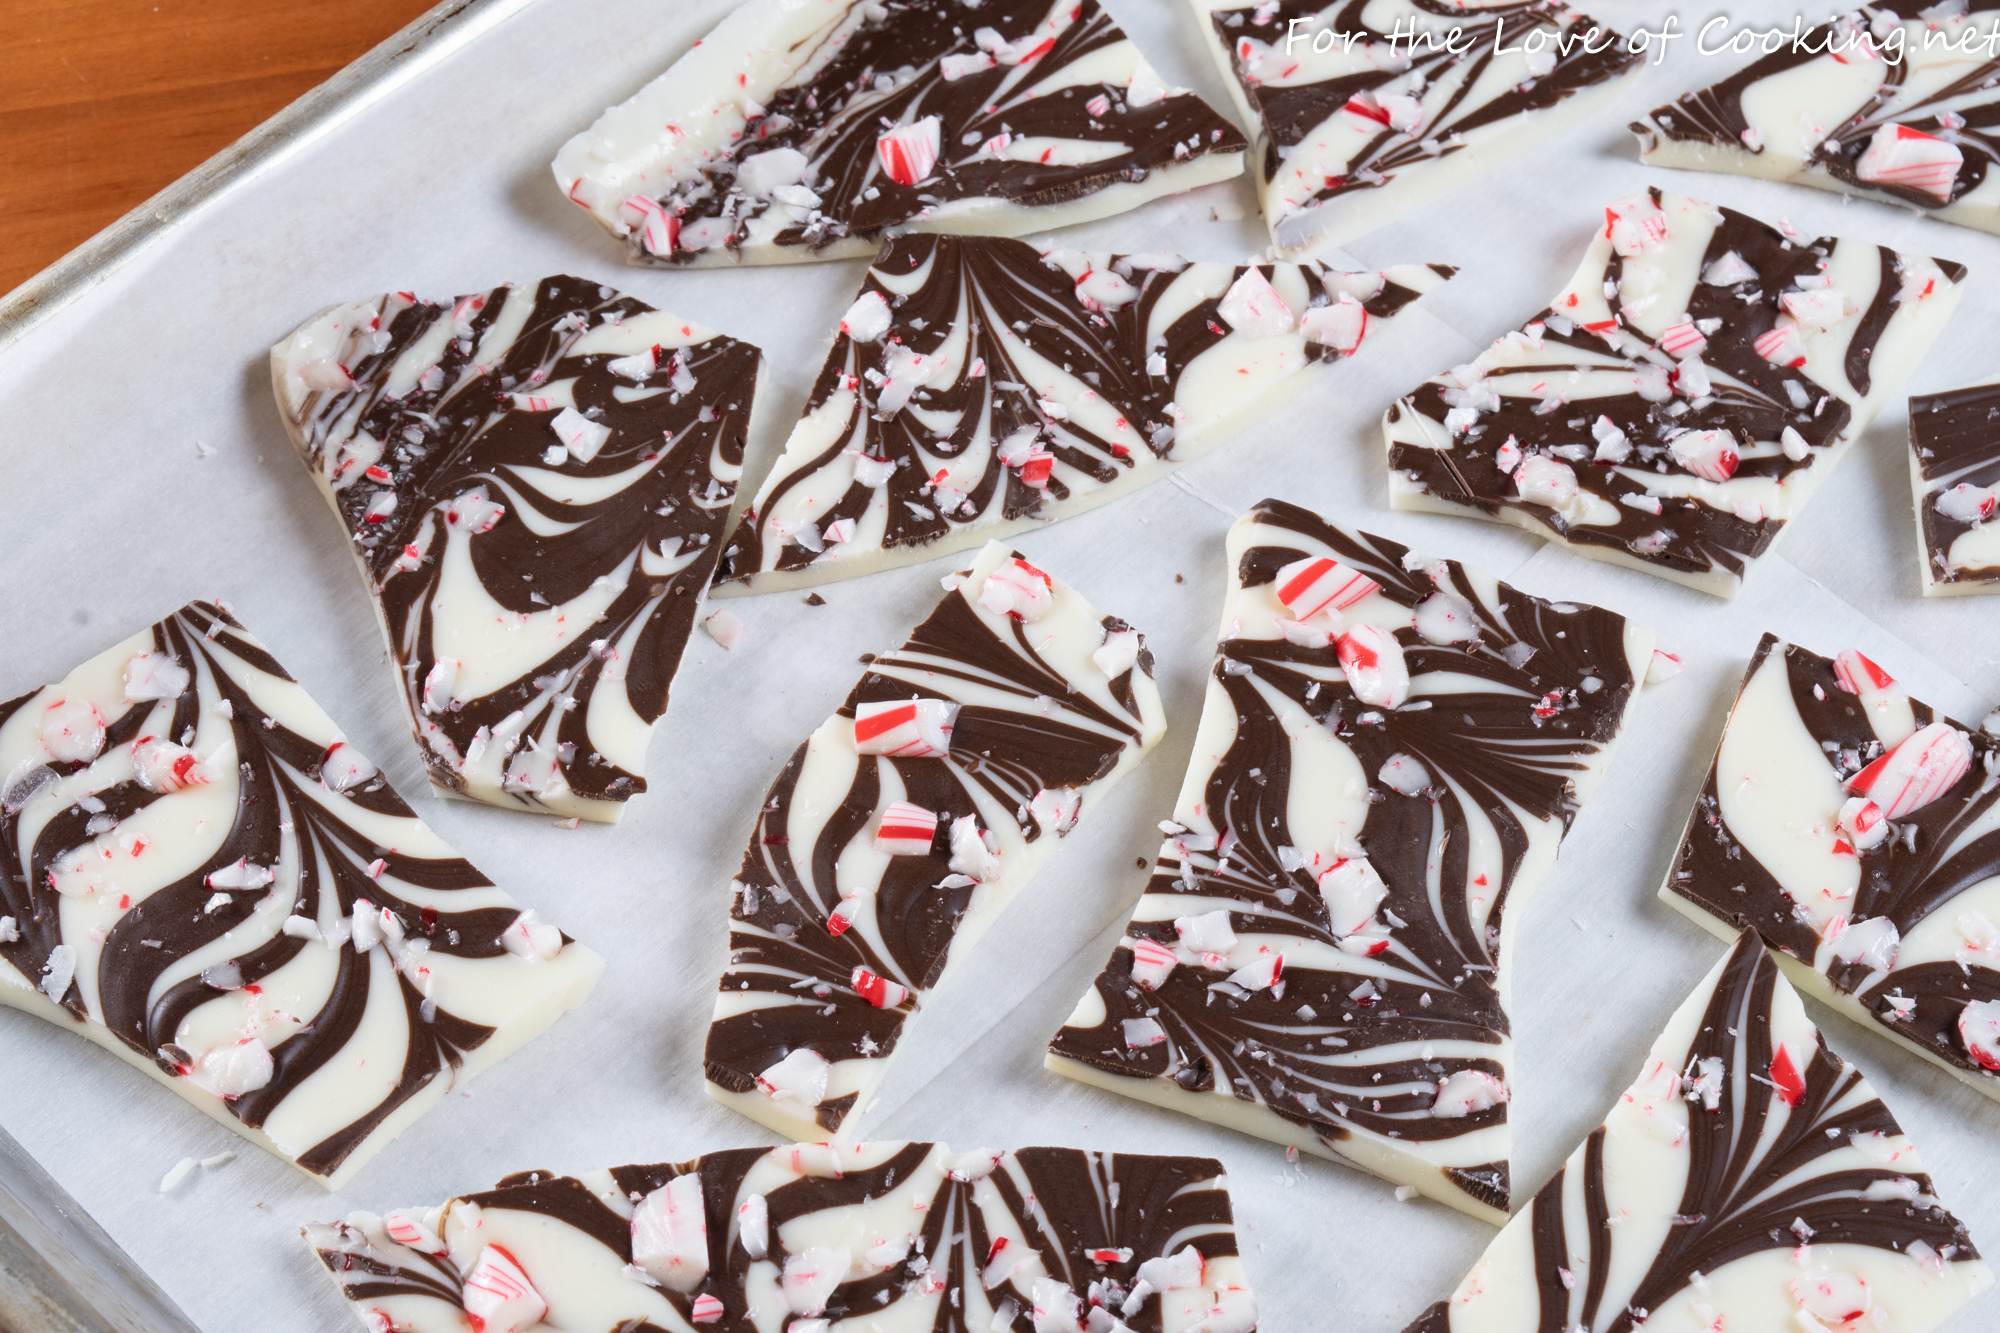 Swirled White Chocolate Peppermint Bark